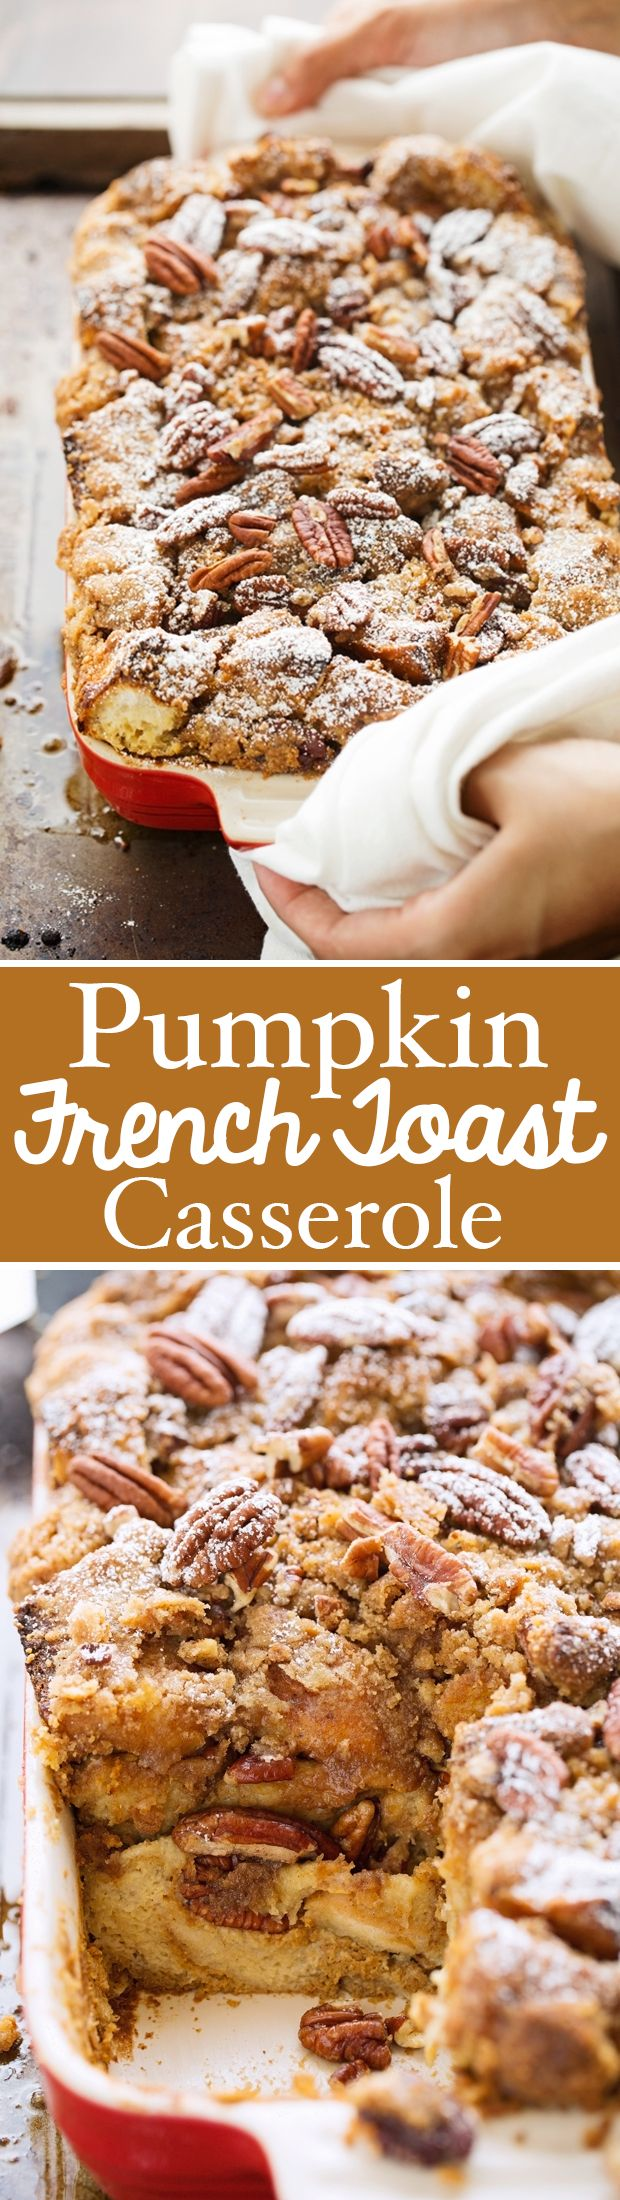 Pumpkin French Toast Casserole  A Quick Overnight Pumpkin French Toast  Casserole Recipe That Can Be